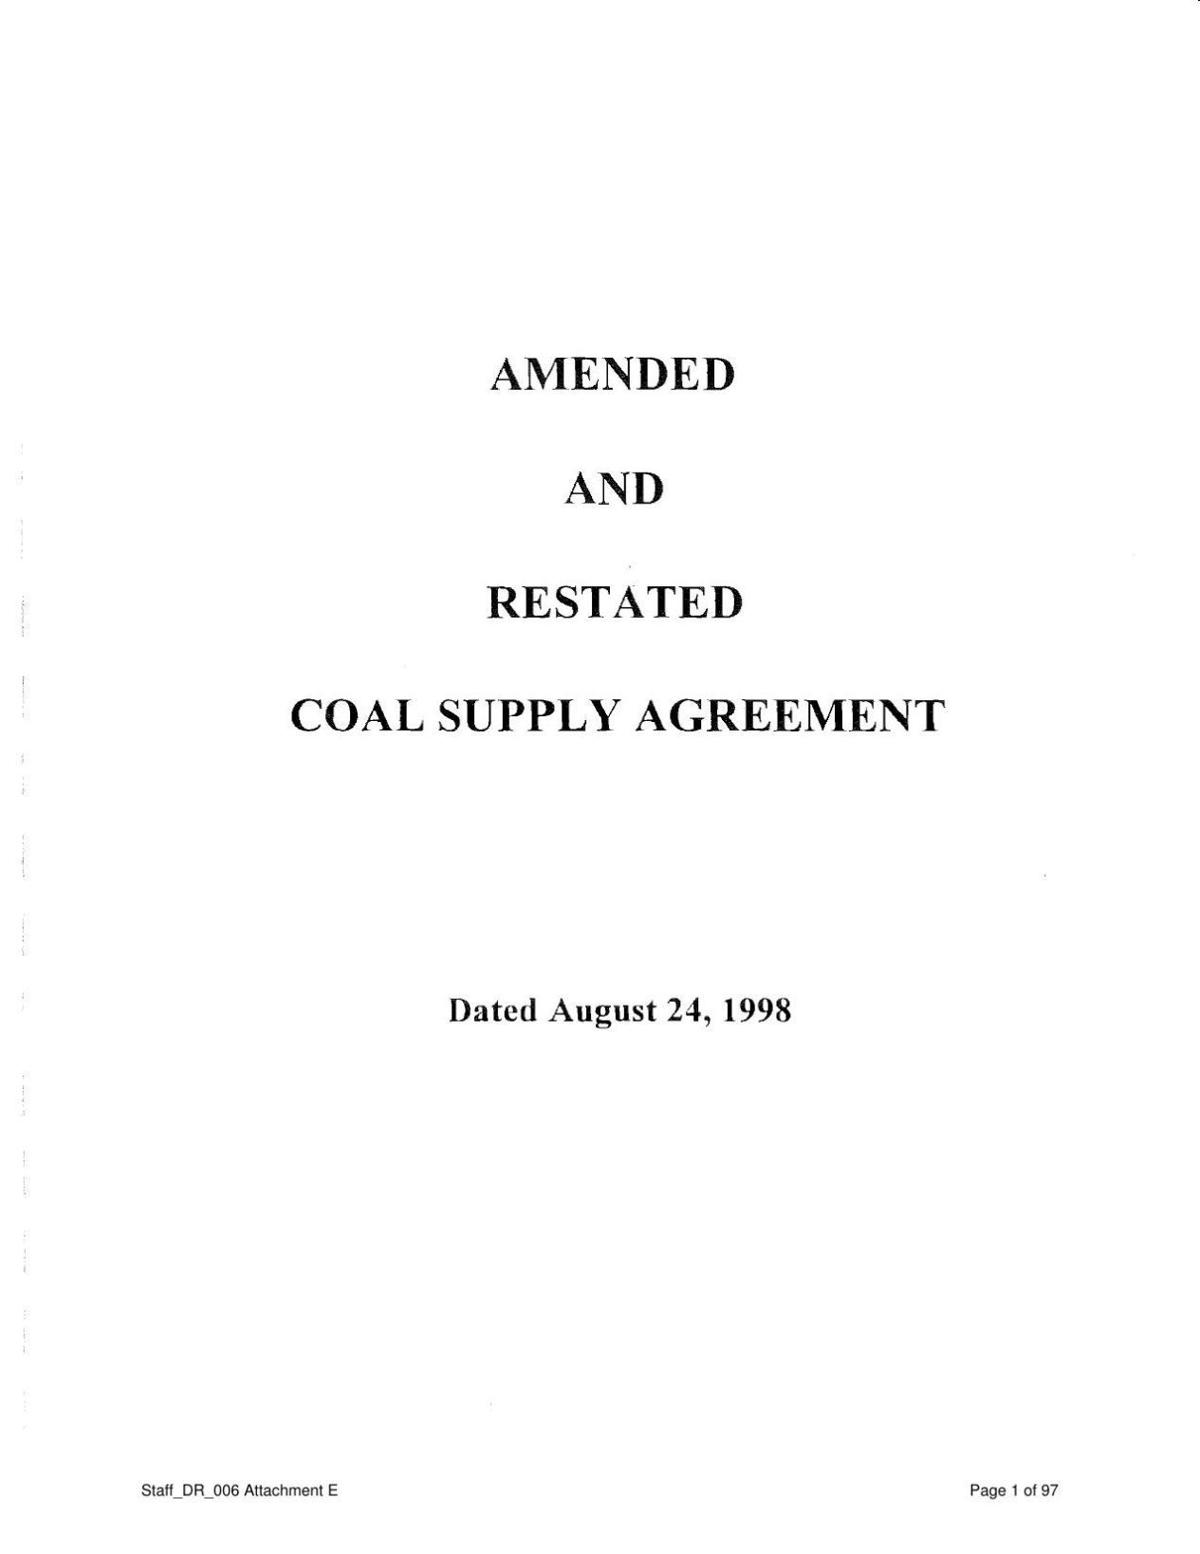 1998 coal contract for Colstrip Power Plant